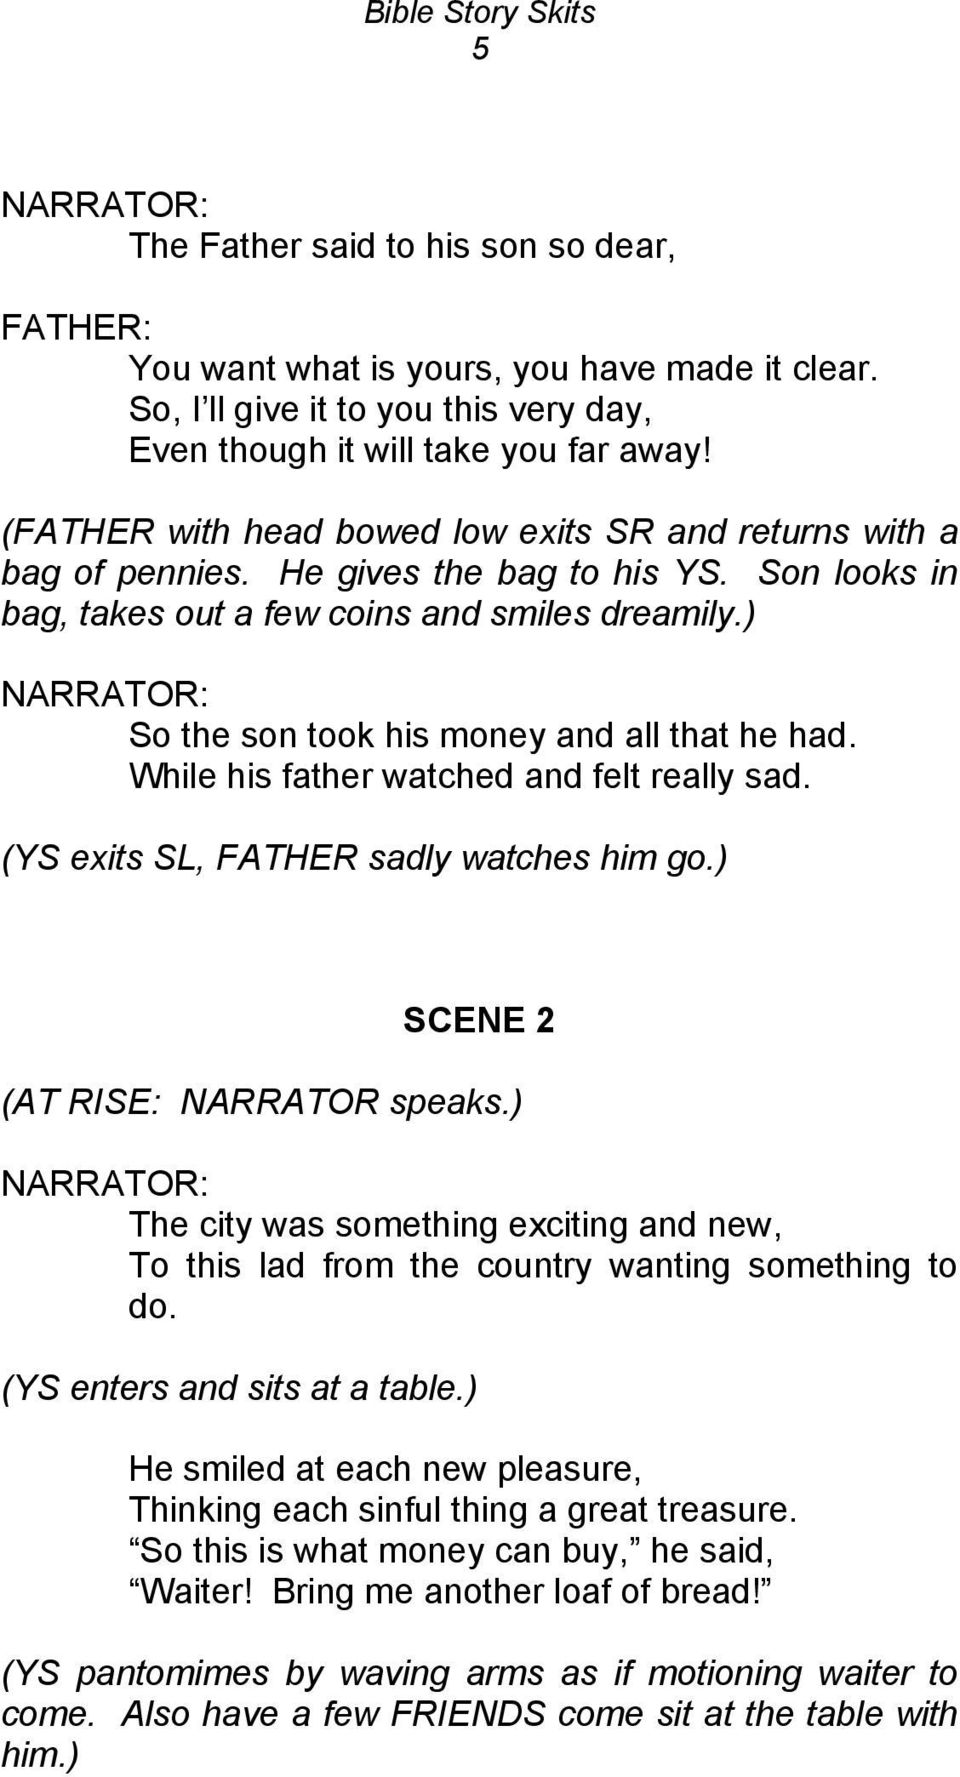 ) So the son took his money and all that he had. While his father watched and felt really sad. (YS exits SL, FATHER sadly watches him go.) SCENE 2 (AT RISE: NARRATOR speaks.